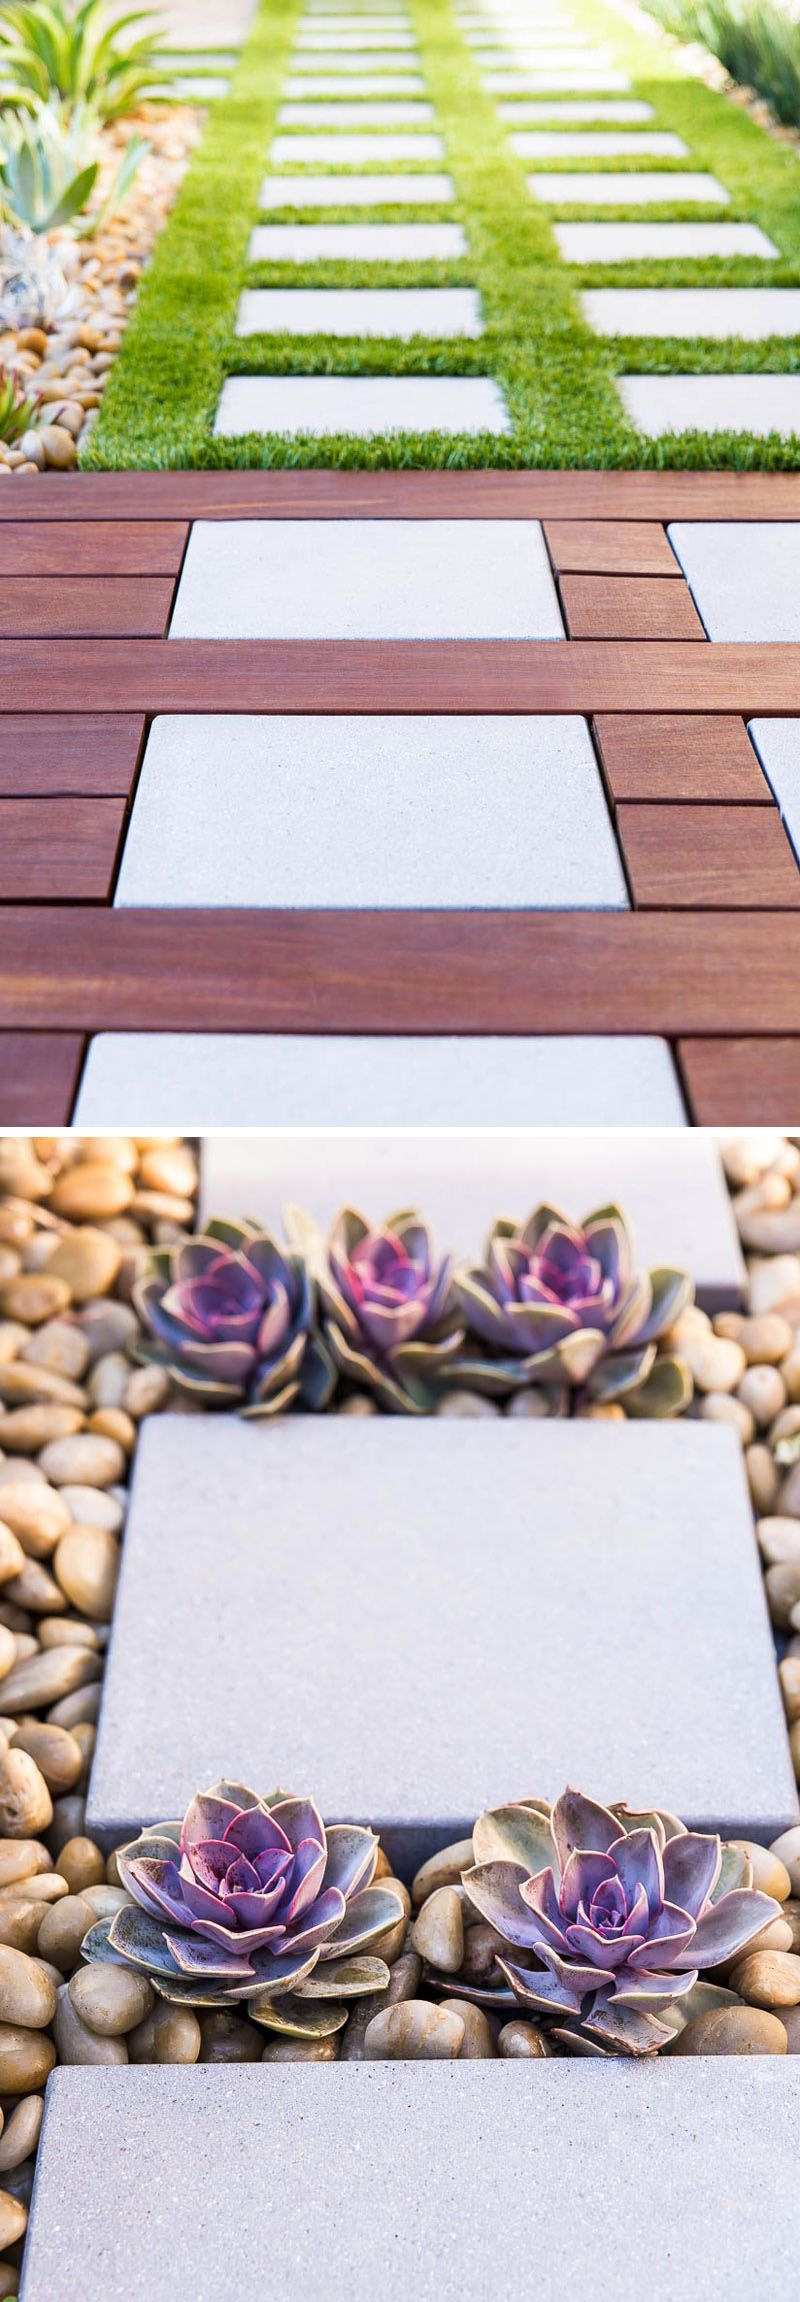 8 Elements To Include When Designing Your Zen Garden Pavers